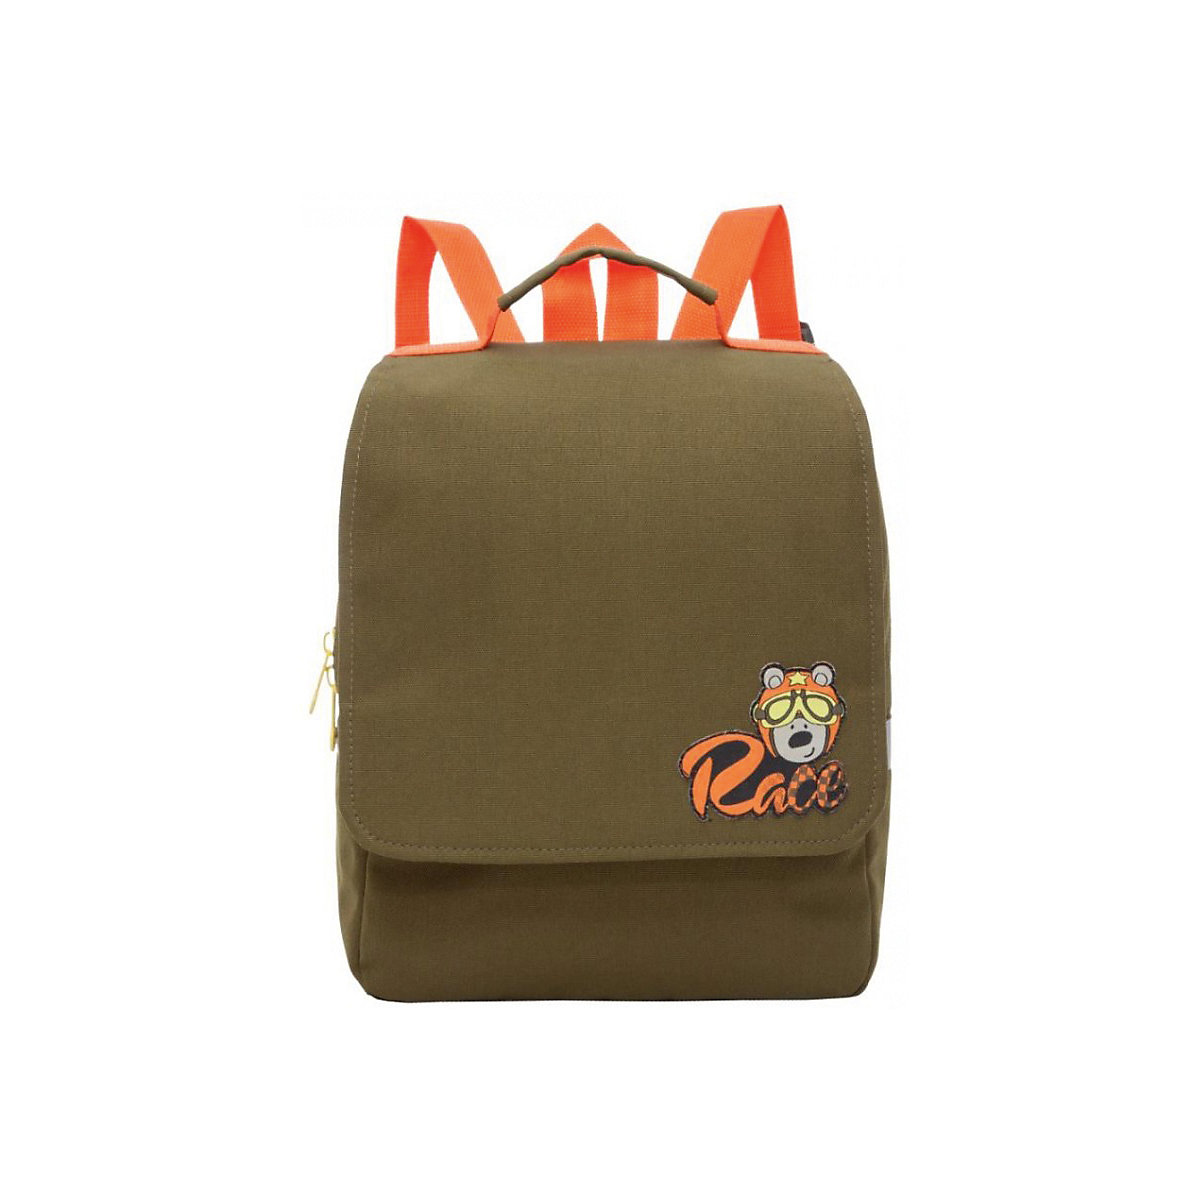 School Bags GRIZZLY 8333966 Schoolbag Backpack Orthopedic Bag For Boy And Girl Animals Flowers MTpromo